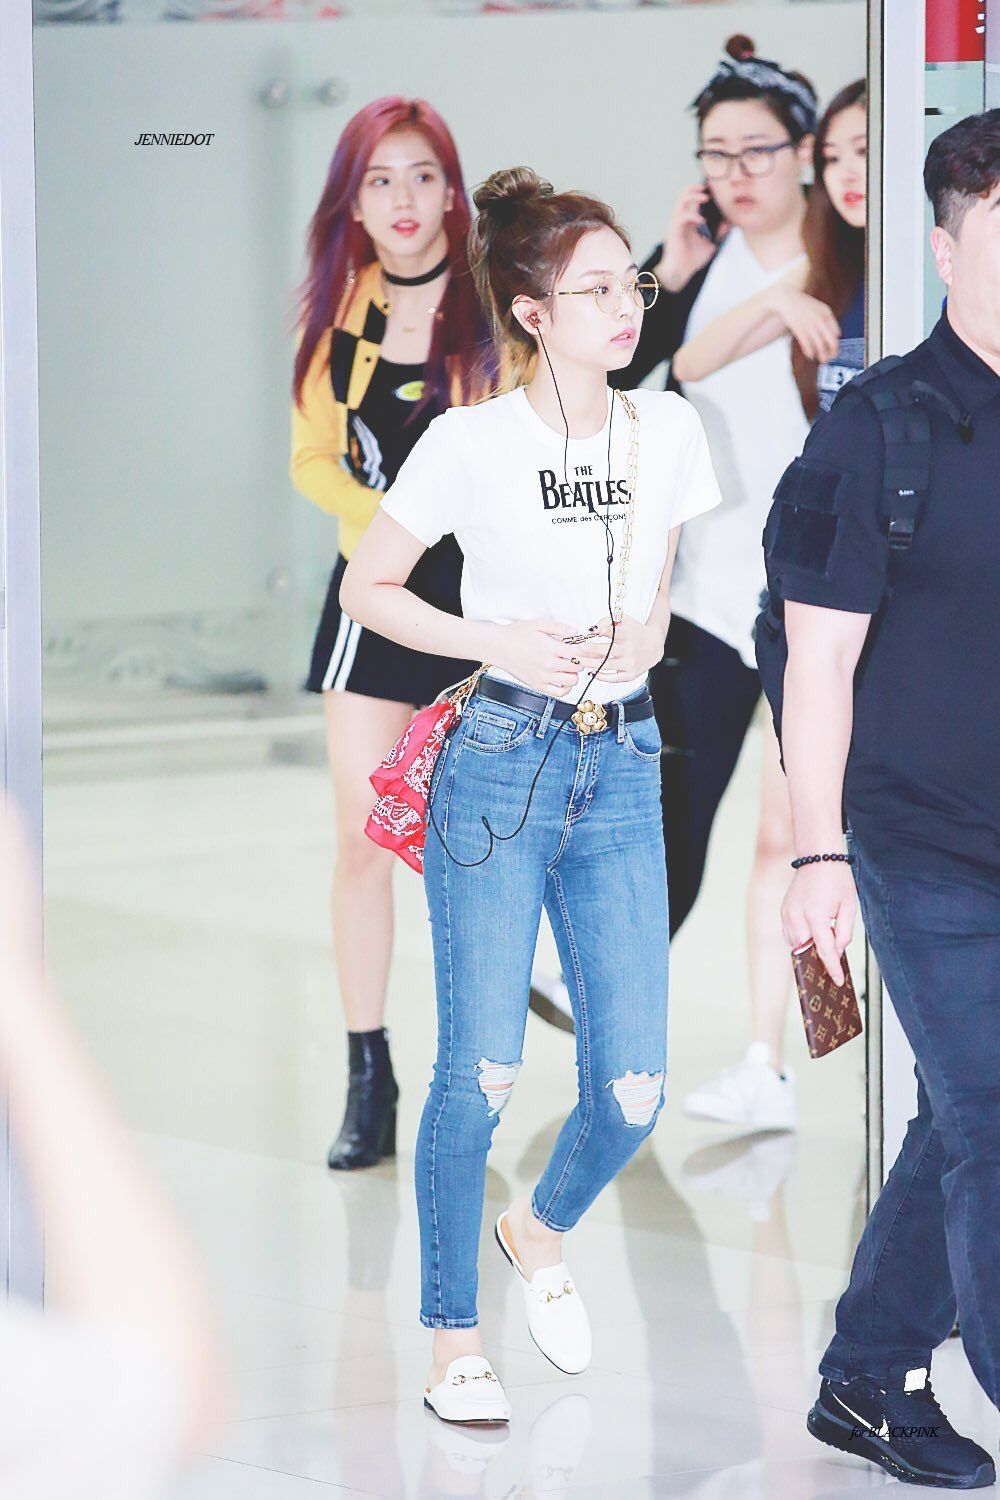 54 Best Jennie Airport images